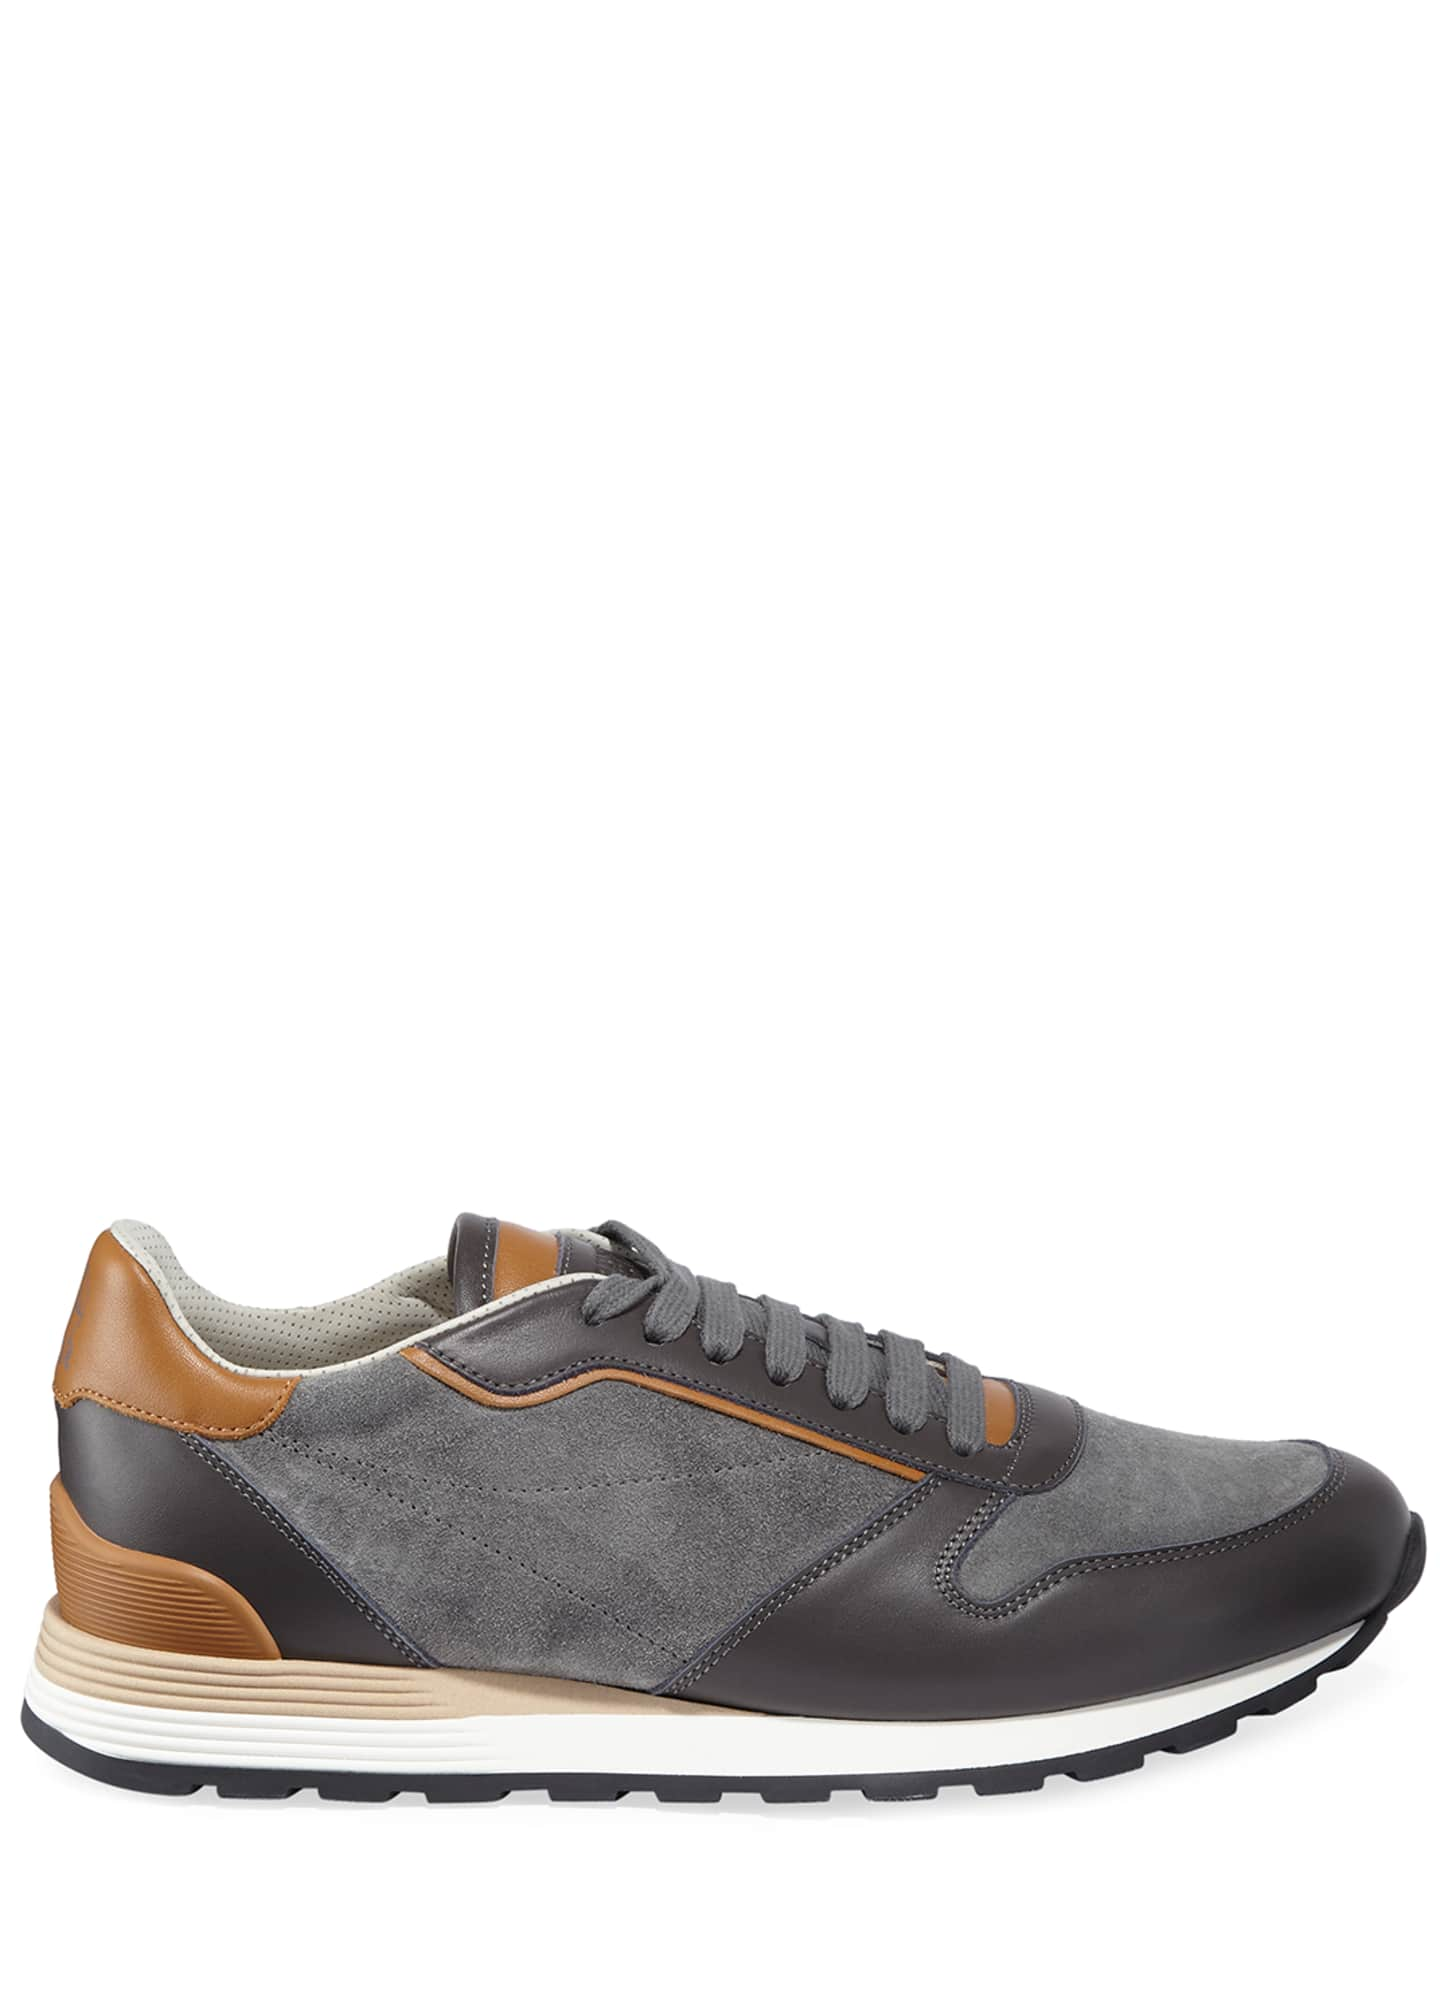 Image 3 of 3: Men's Suede & Leather Athletic Sneakers